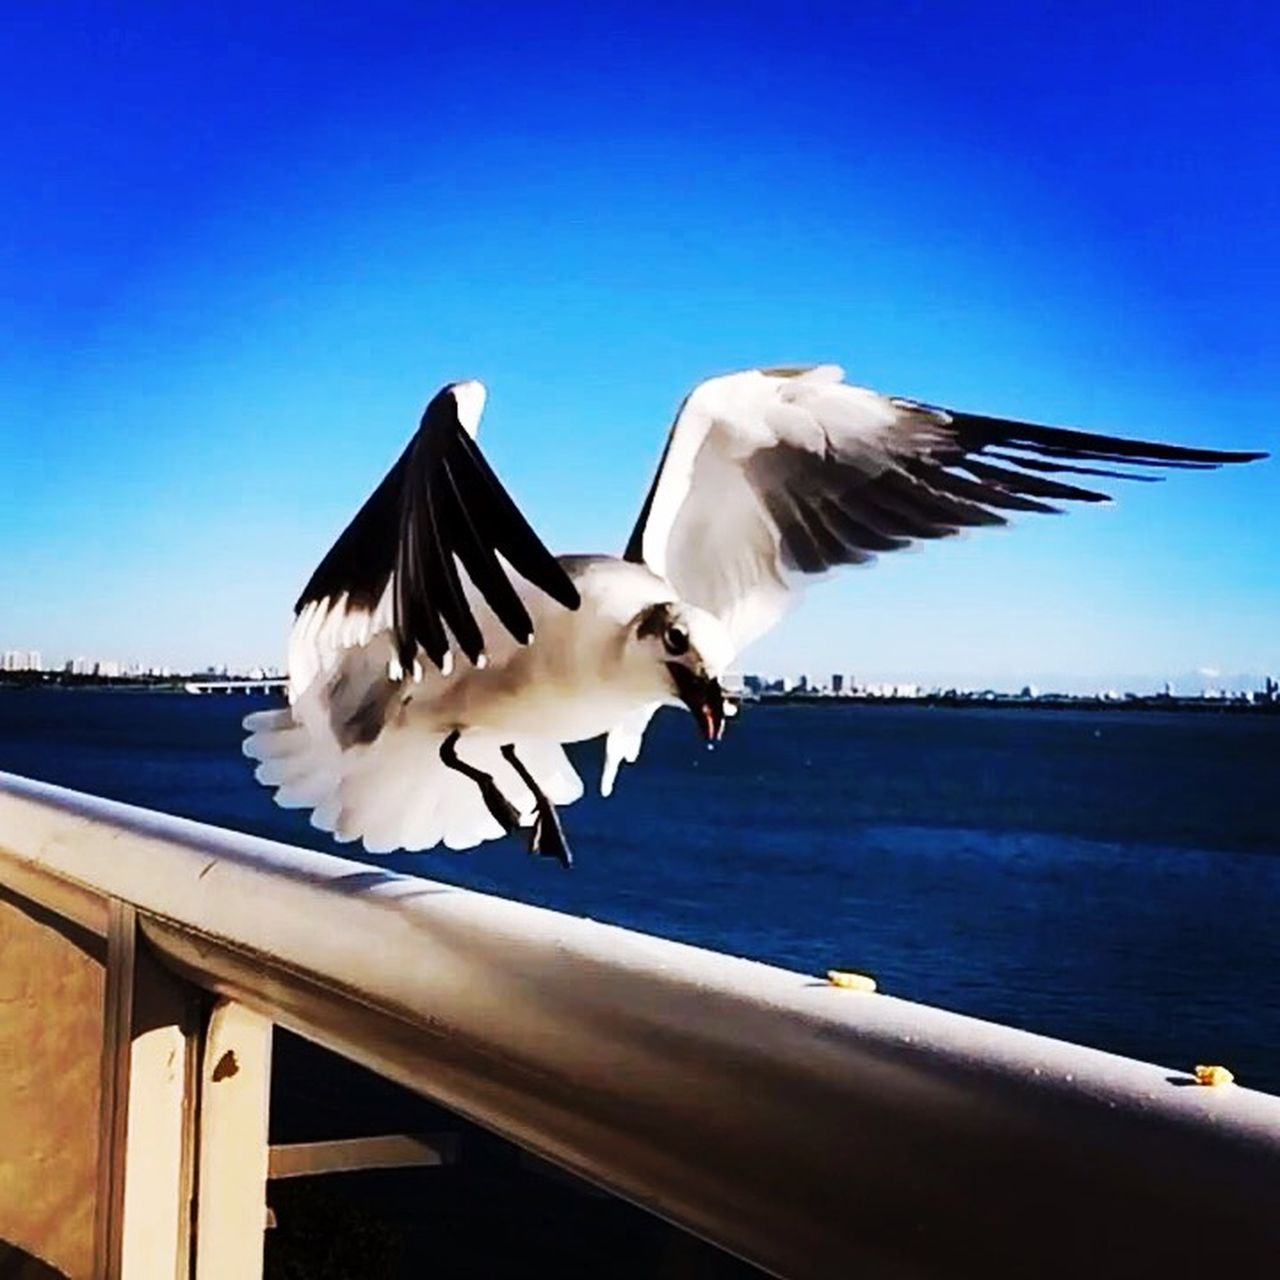 Miami FL🇺🇸☀️ THE BIRD All_shots #Portrait #Vscocamphotos #Likesforlikes #Photographs #Photographylovers #TopLikeTags #Outdoorphotography #Likesreturned #Silhouette #Likeforlike #Art #Contrast #Landscaped #TagStaGram #love #friends #tagstagram #photooftheday #selfie #amazing #f EyeEm Hdr_Collection HDR Photography Miami The Moment - 2015 EyeEm Awards EyeEm Best Shots Tasteofnature #awesome #best #cool #stephiscool #top #topnewfollowers #fantastico #instagram #sound #soundhound #applemusic #digital #model #beautiful #photos #photography #amazing #usa #socialmedia #social #nature #street #streetart #instagram #video #vi EyeEm Gallery